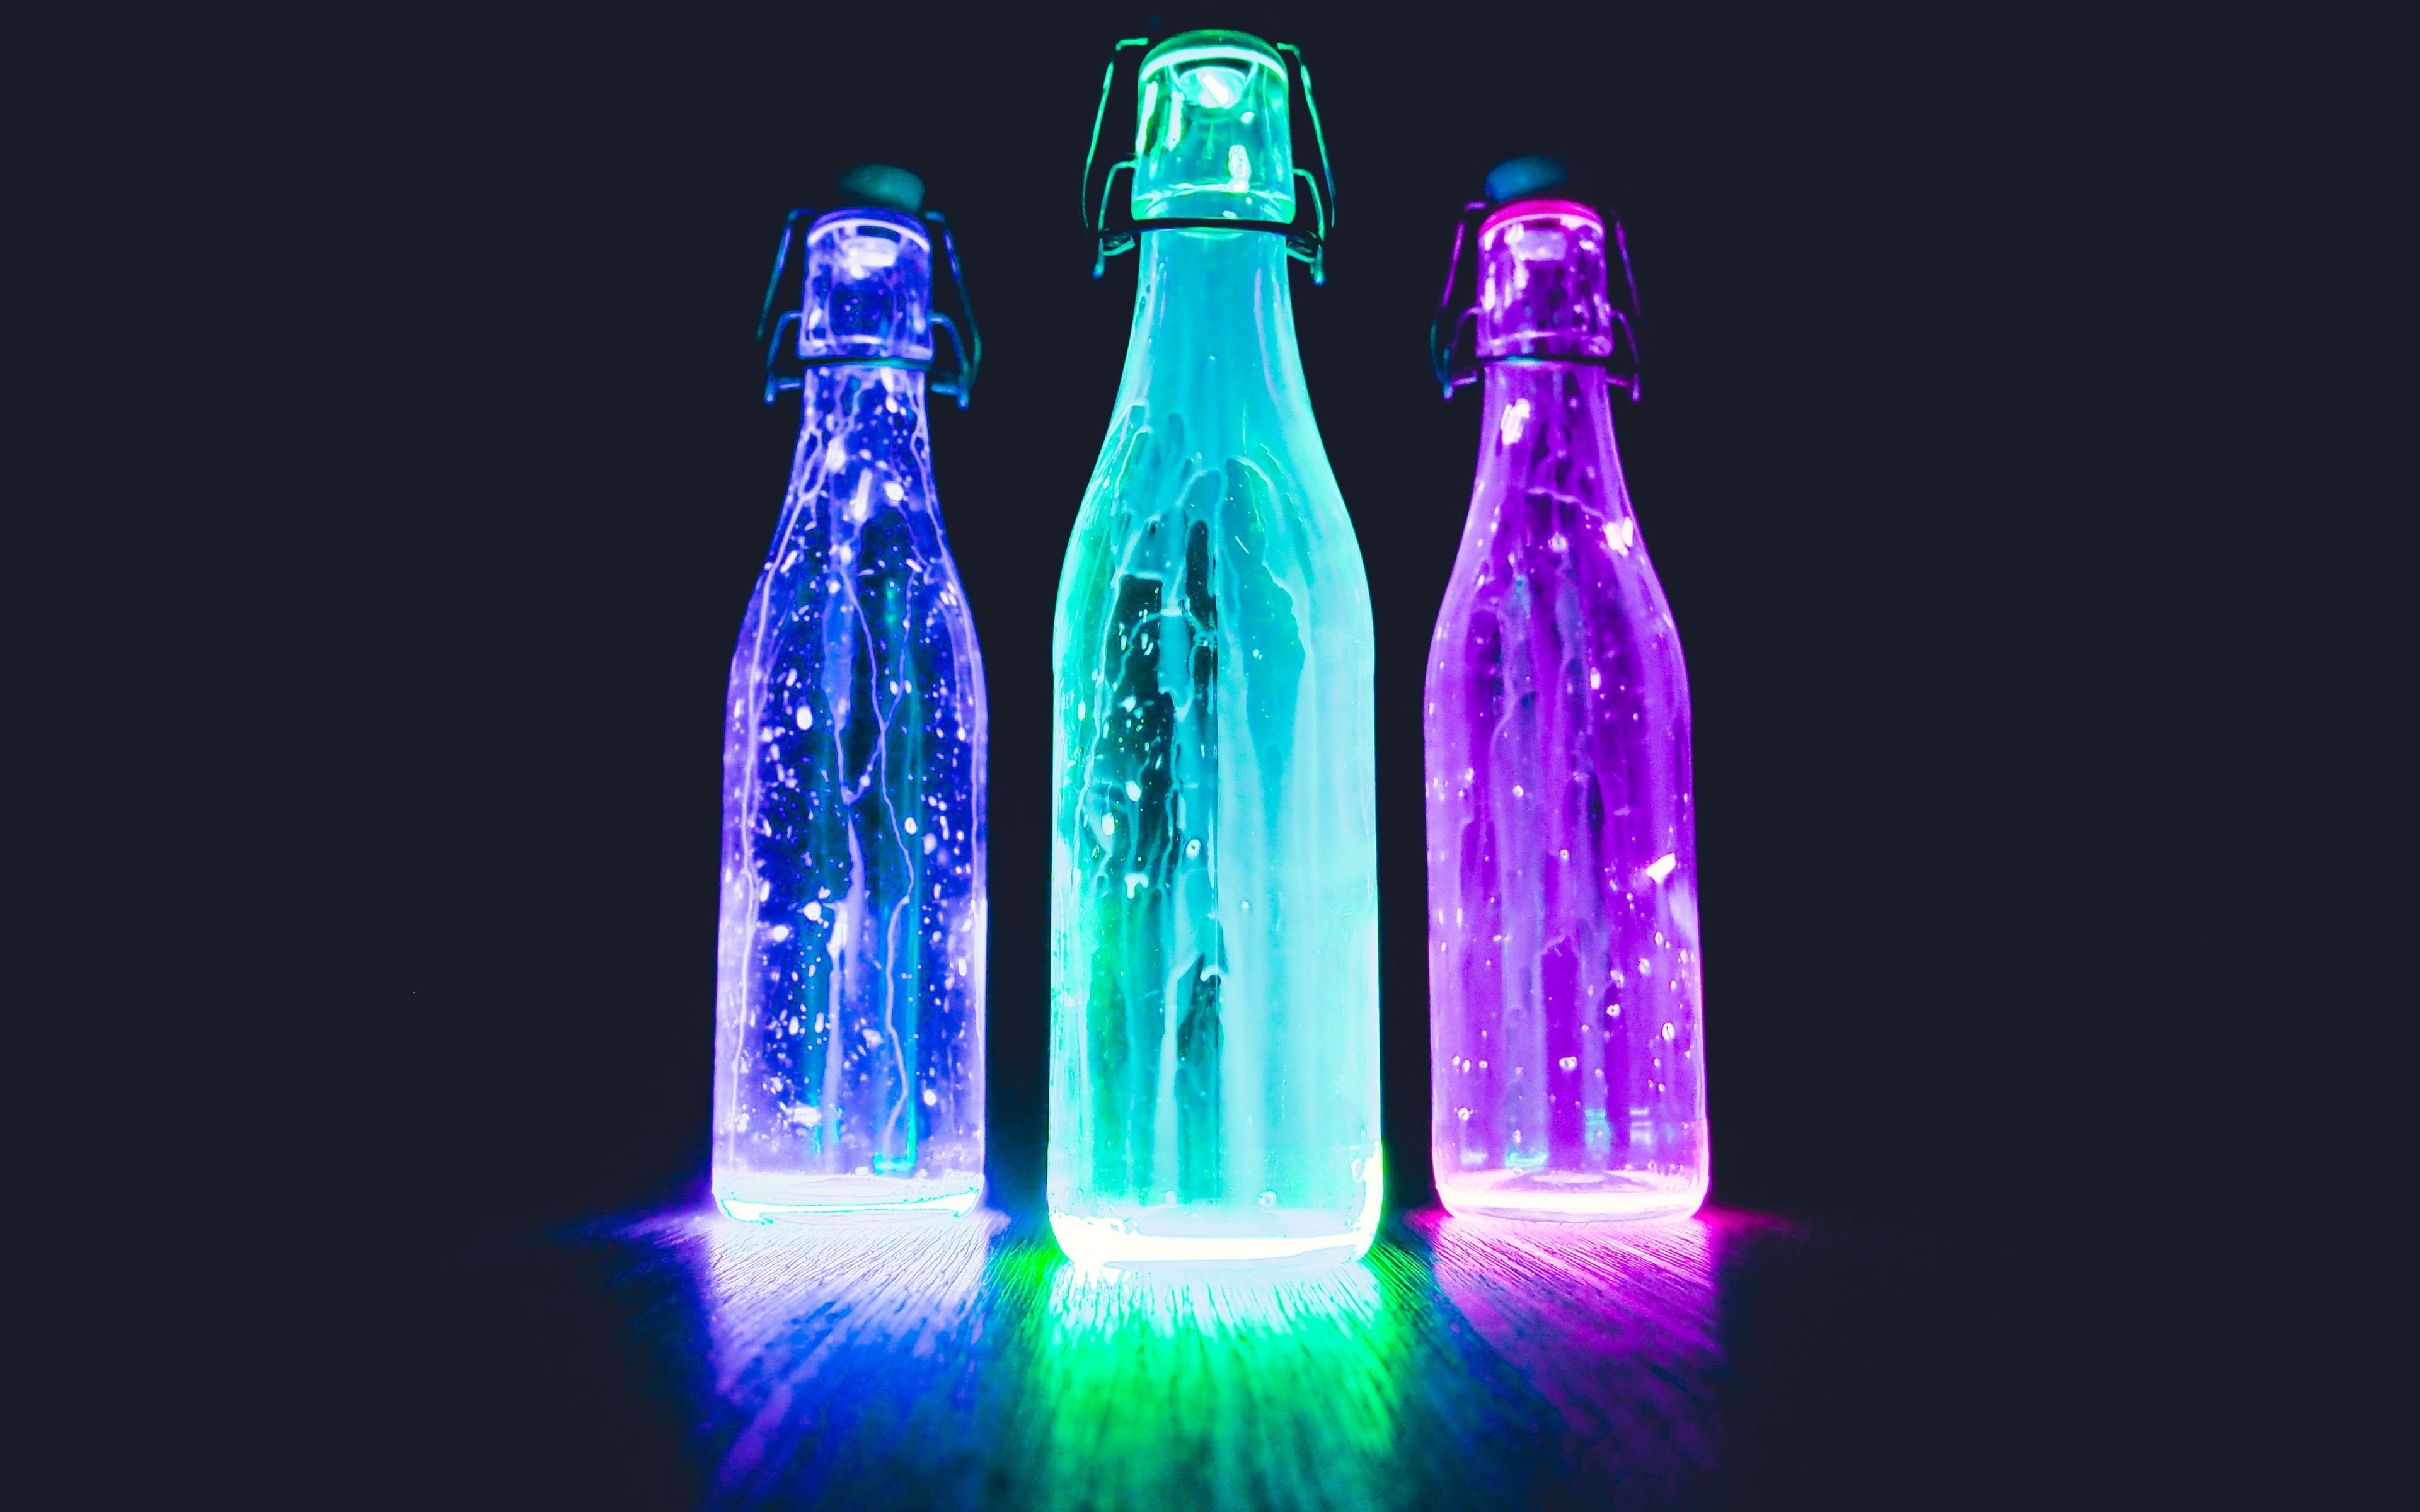 Liquid Hd Neon Wallpapers Top Free Liquid Hd Neon